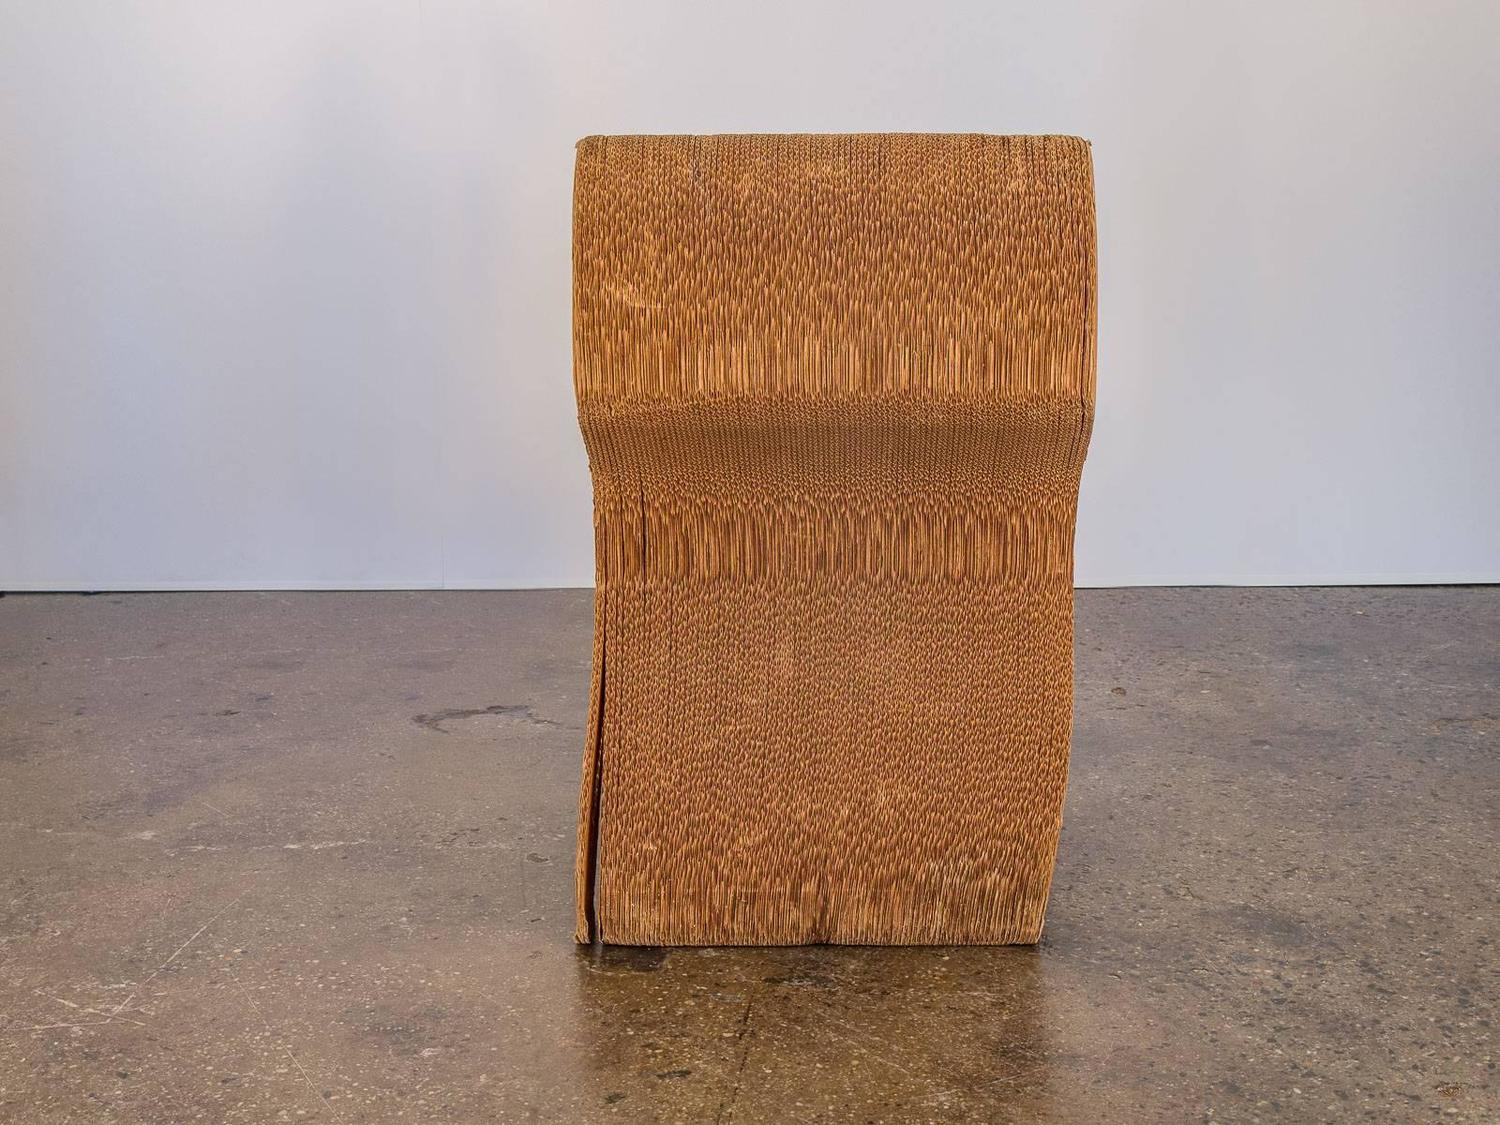 frank gehry cardboard chair covers and linens lebanon church road vintage corrugated for sale at 1stdibs